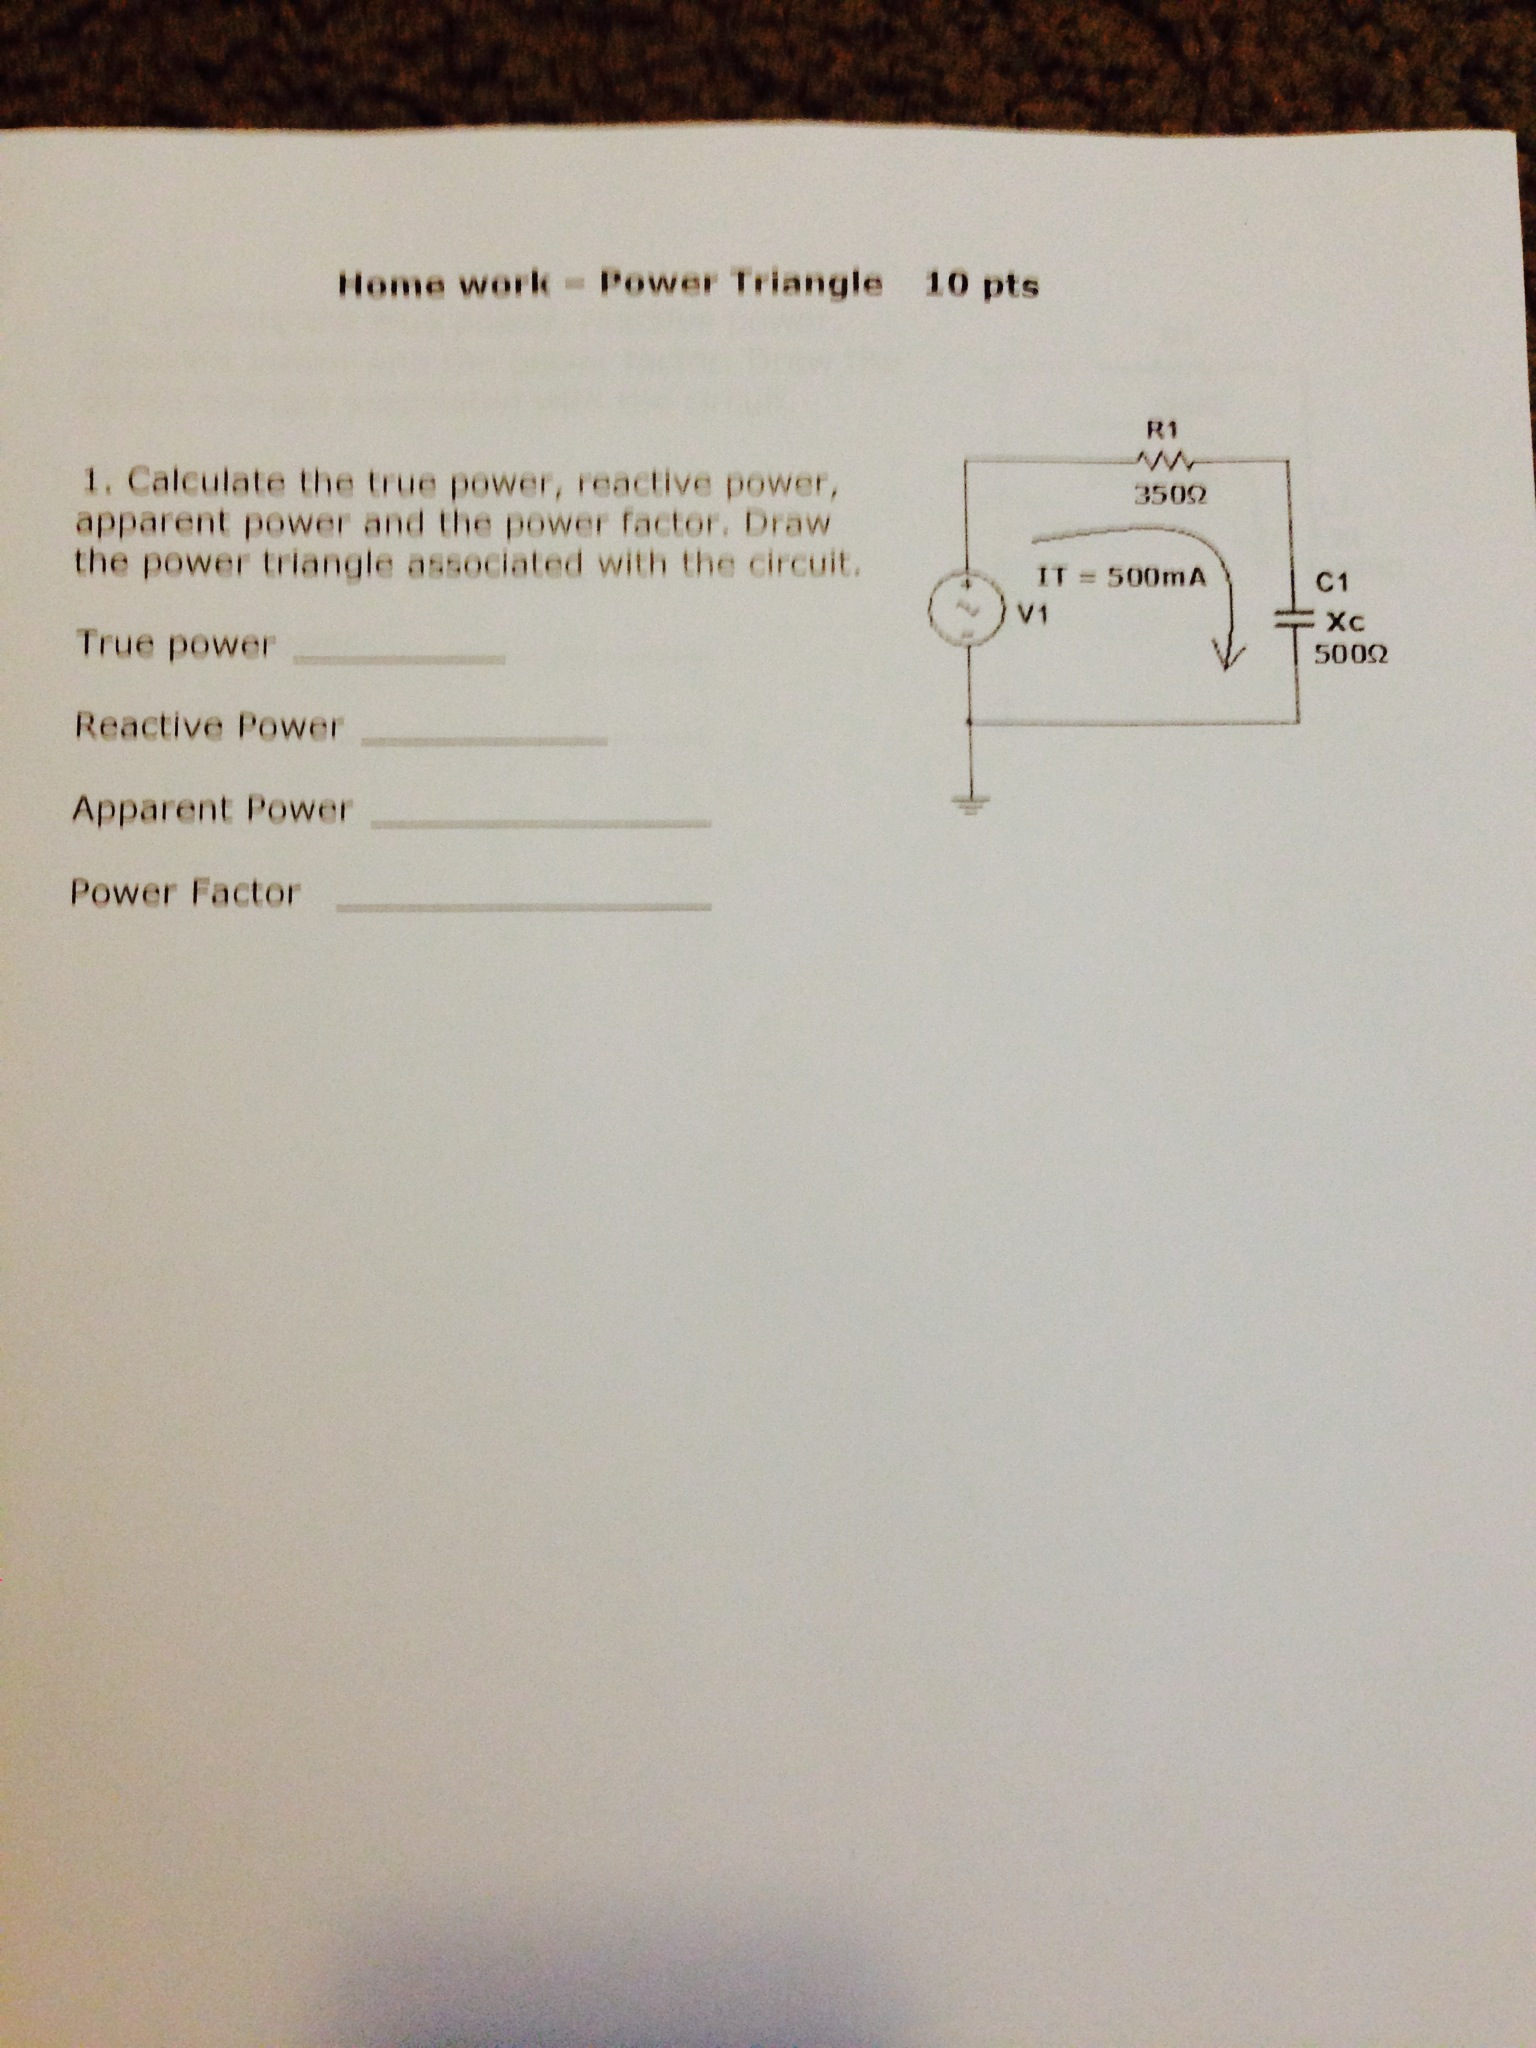 Calculate the true power, reactive power, apparent